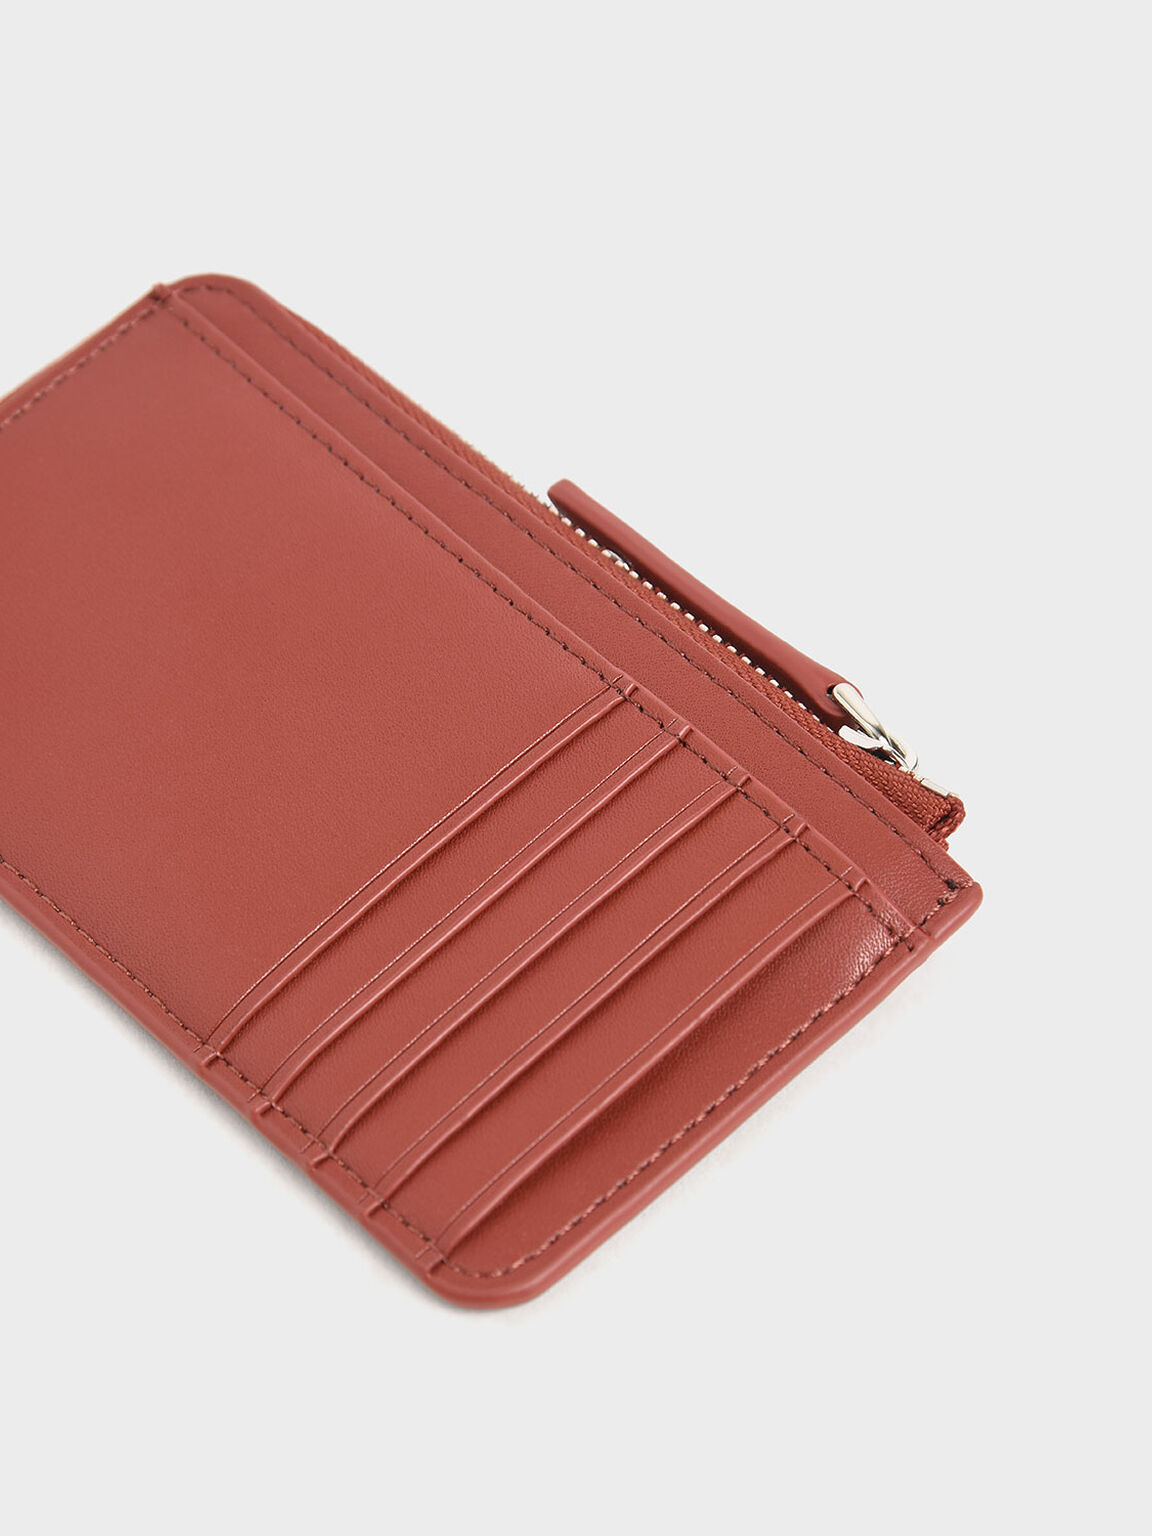 Zip Around Multi-Slot Card Holder, Clay, hi-res